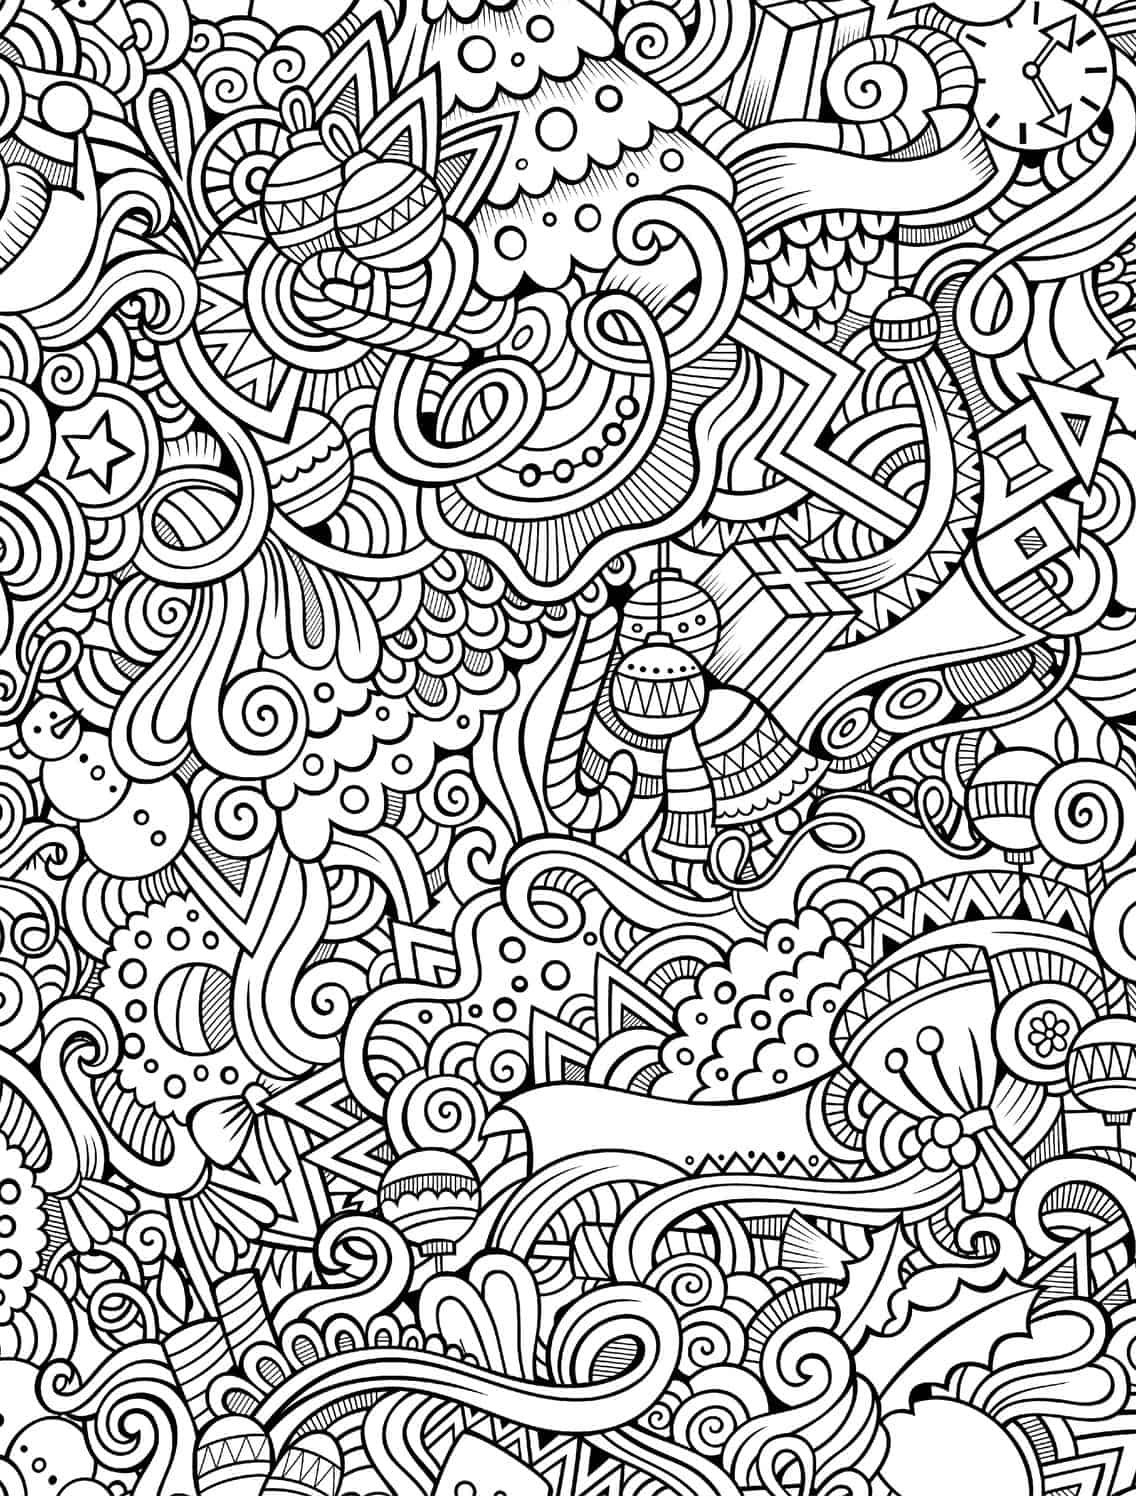 Free Coloring Pages To Print For Christmas. easy adult coloring pages for christmas small 10 Free Printable Holiday Adult Coloring Pages